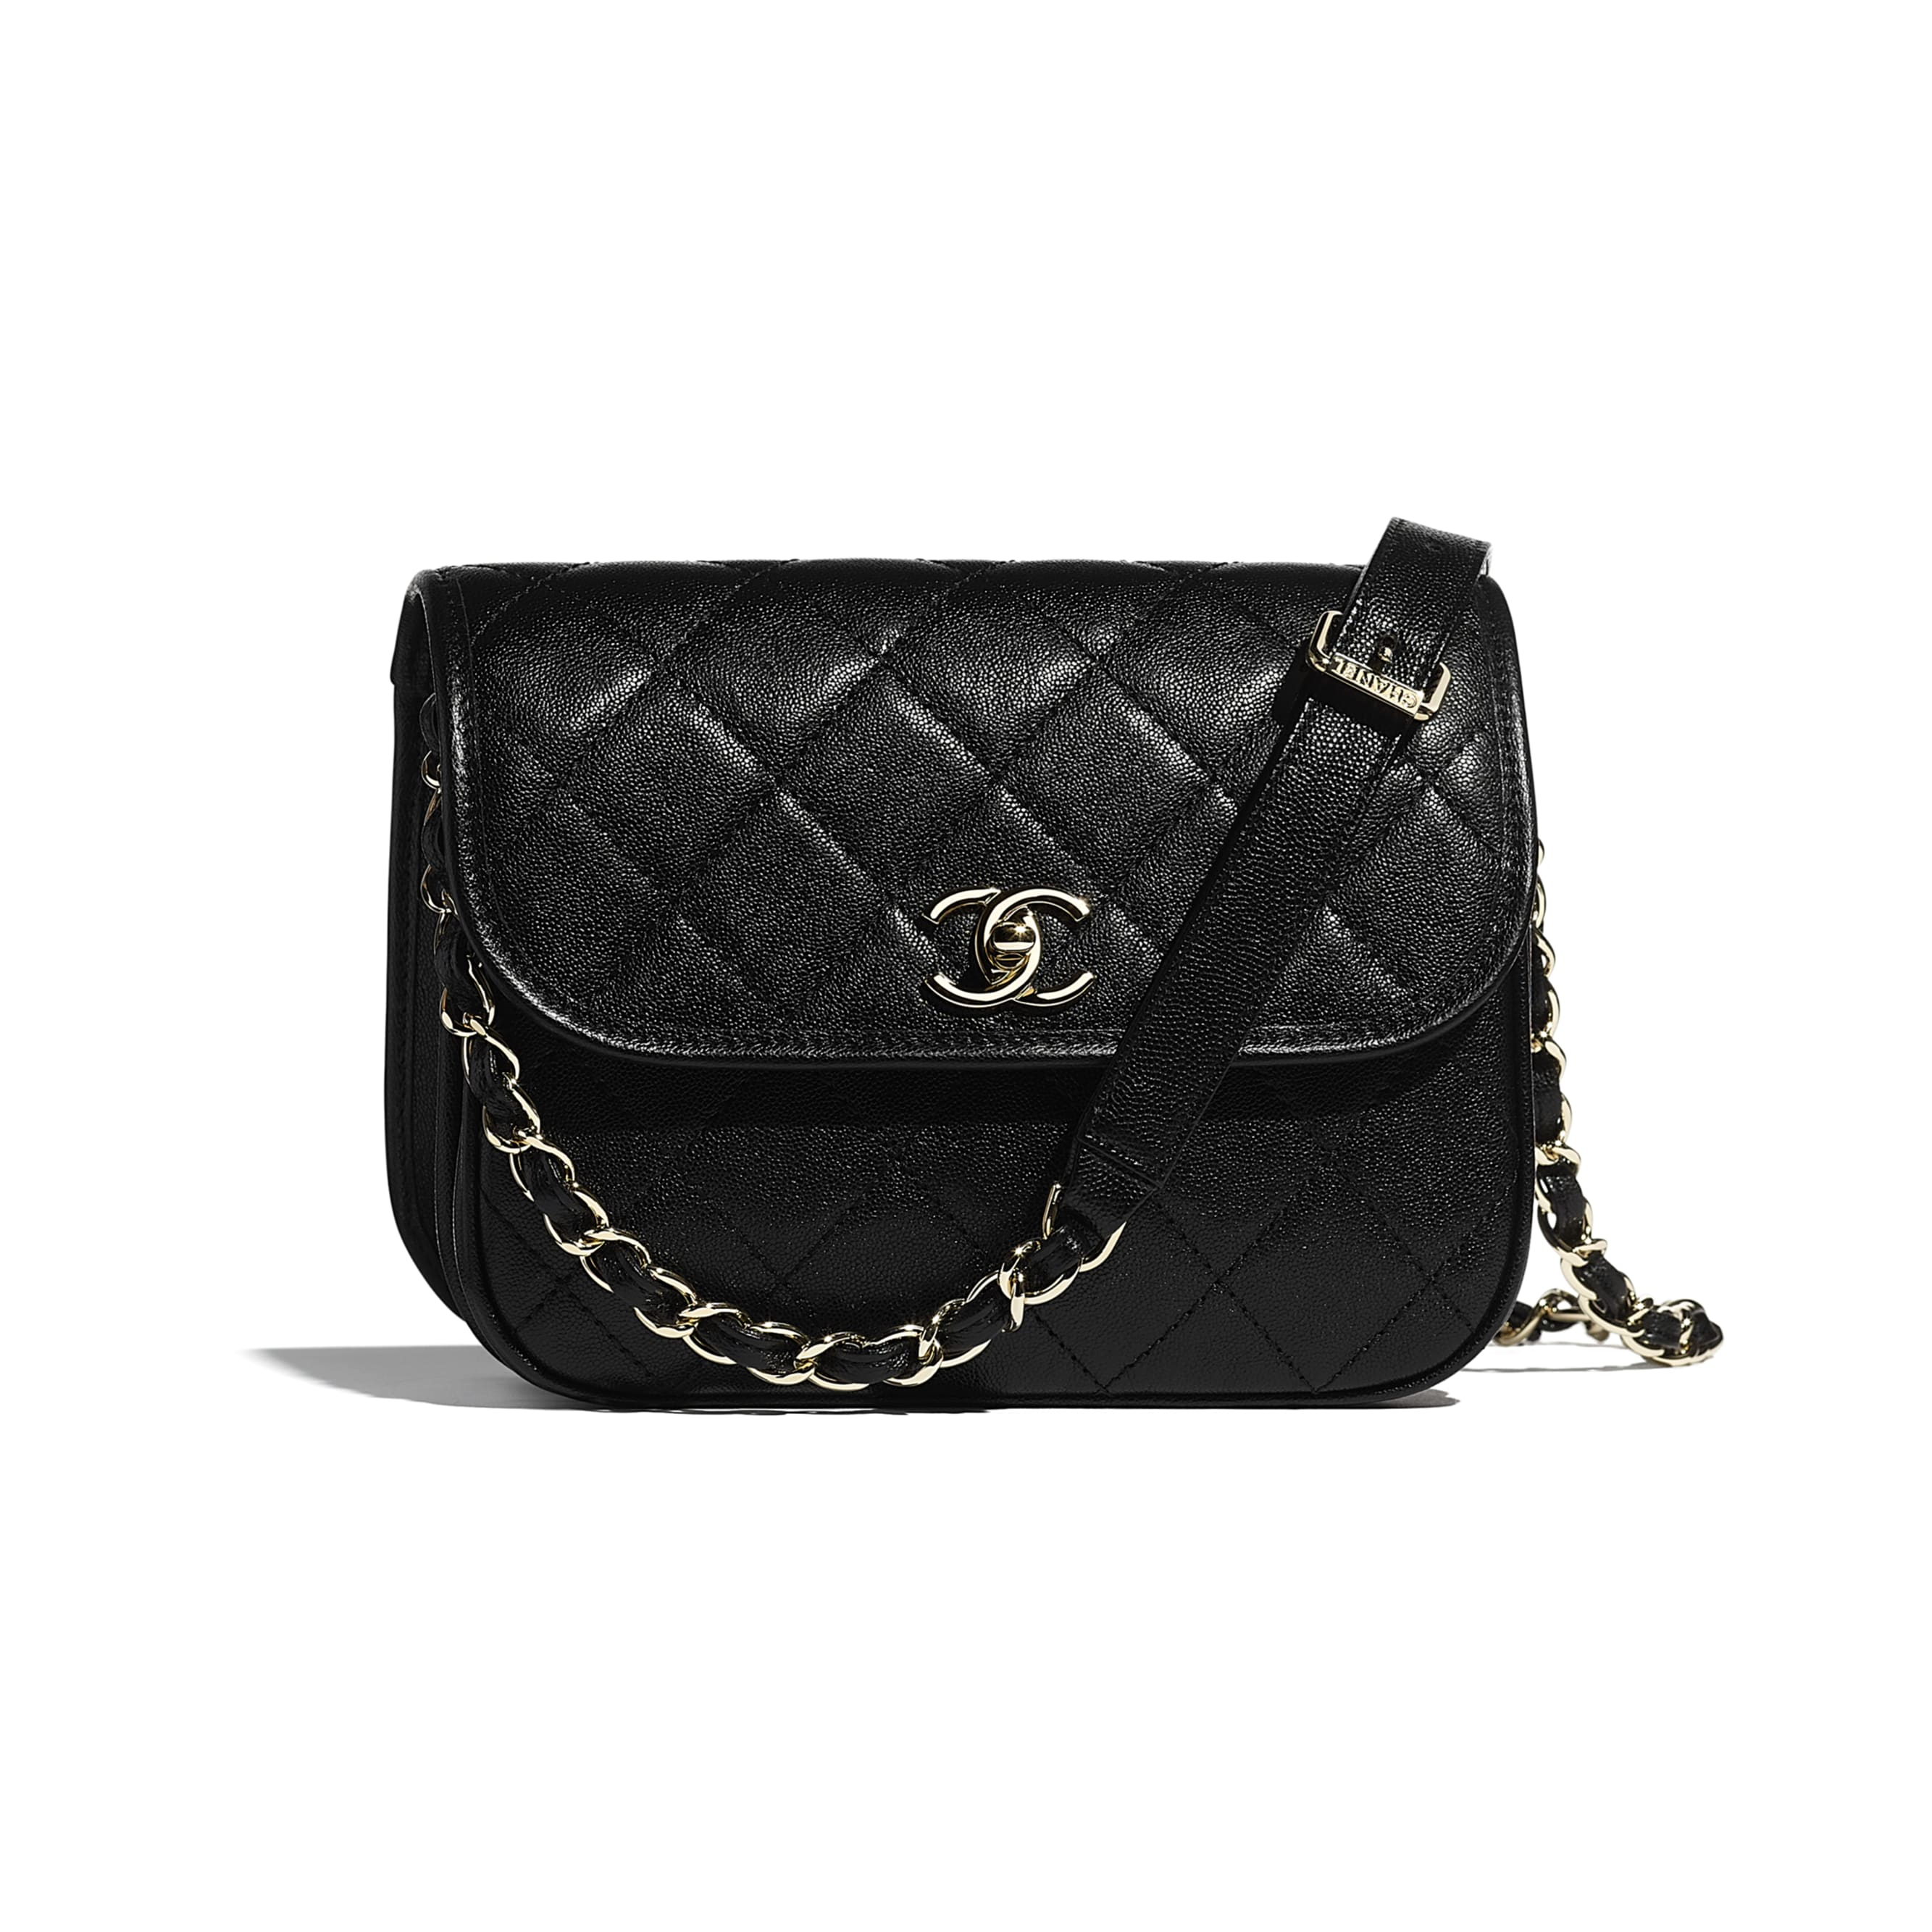 Small Messenger Bag - Black - Grained Calfskin & Gold-Tone Metal - CHANEL - Default view - see standard sized version